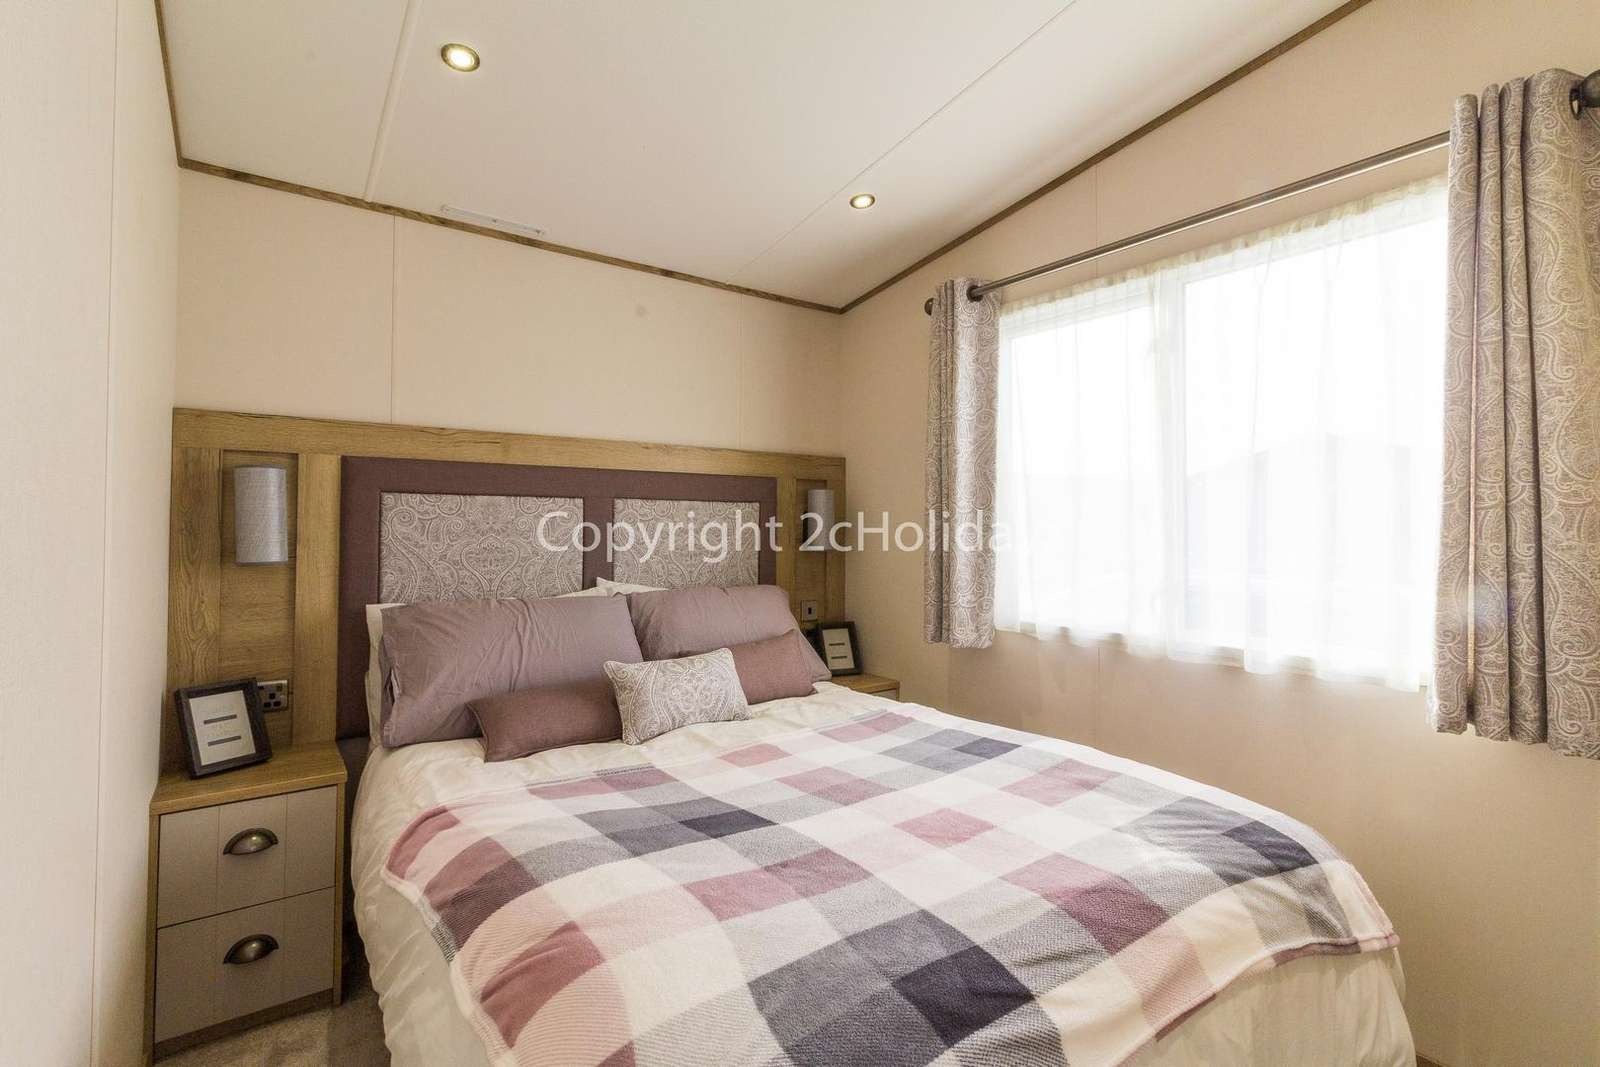 Affordable holidays in Norfolk with 2cHolidays